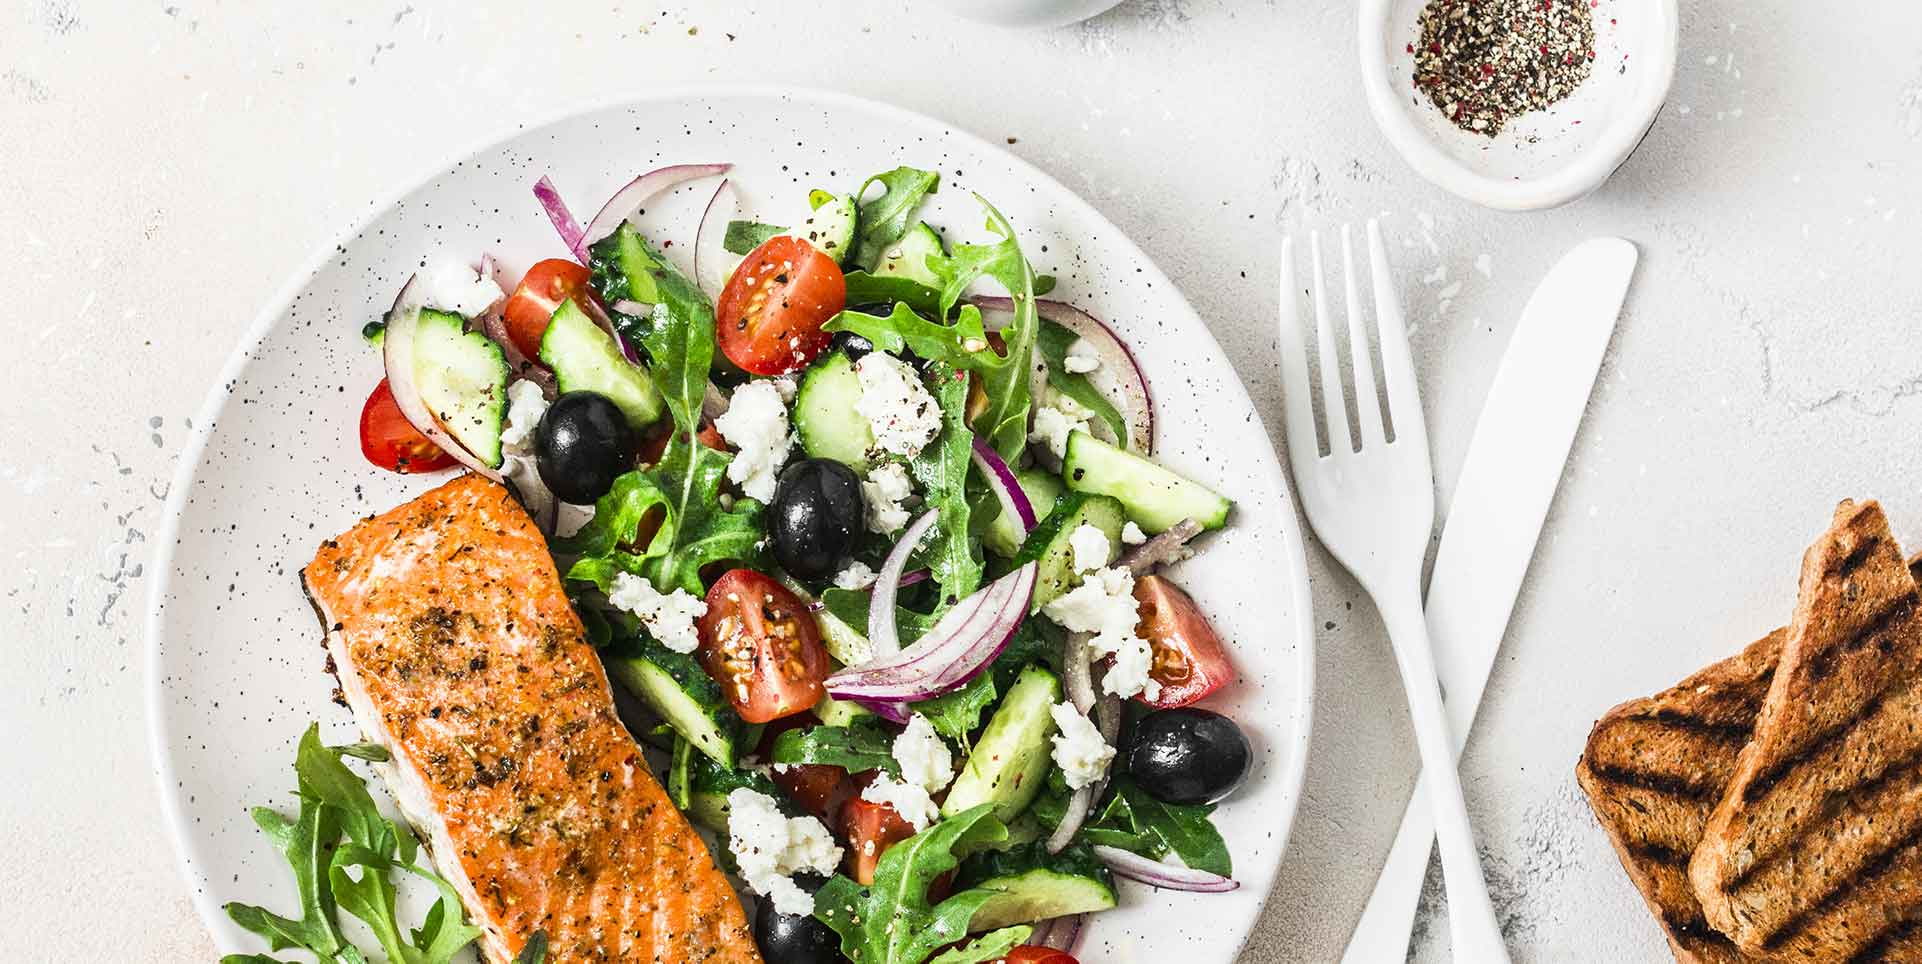 Salmon and Dark Leafy Greens plate